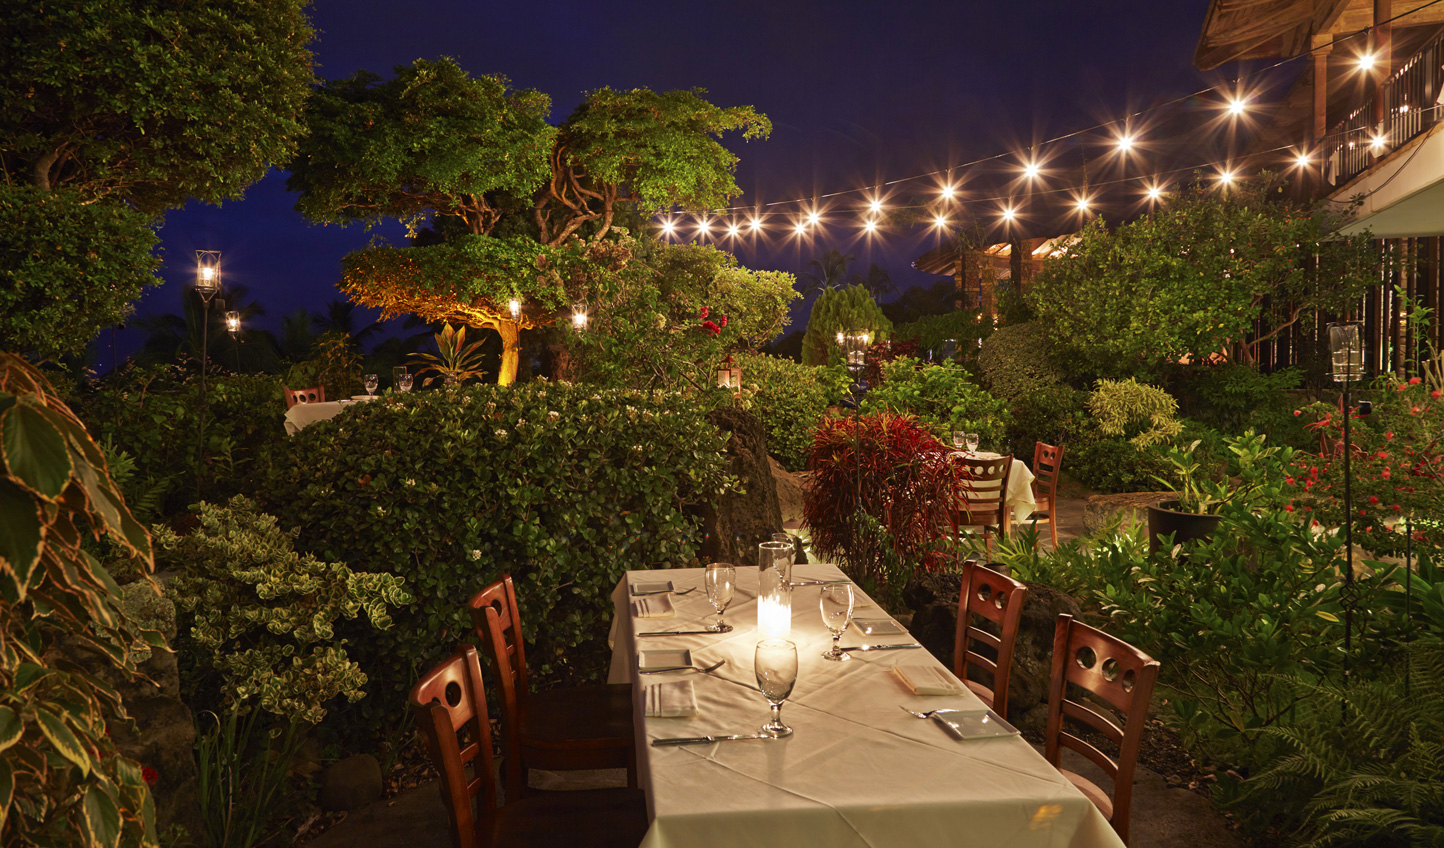 Dine out in the garden and feel the ocean breeze on the air